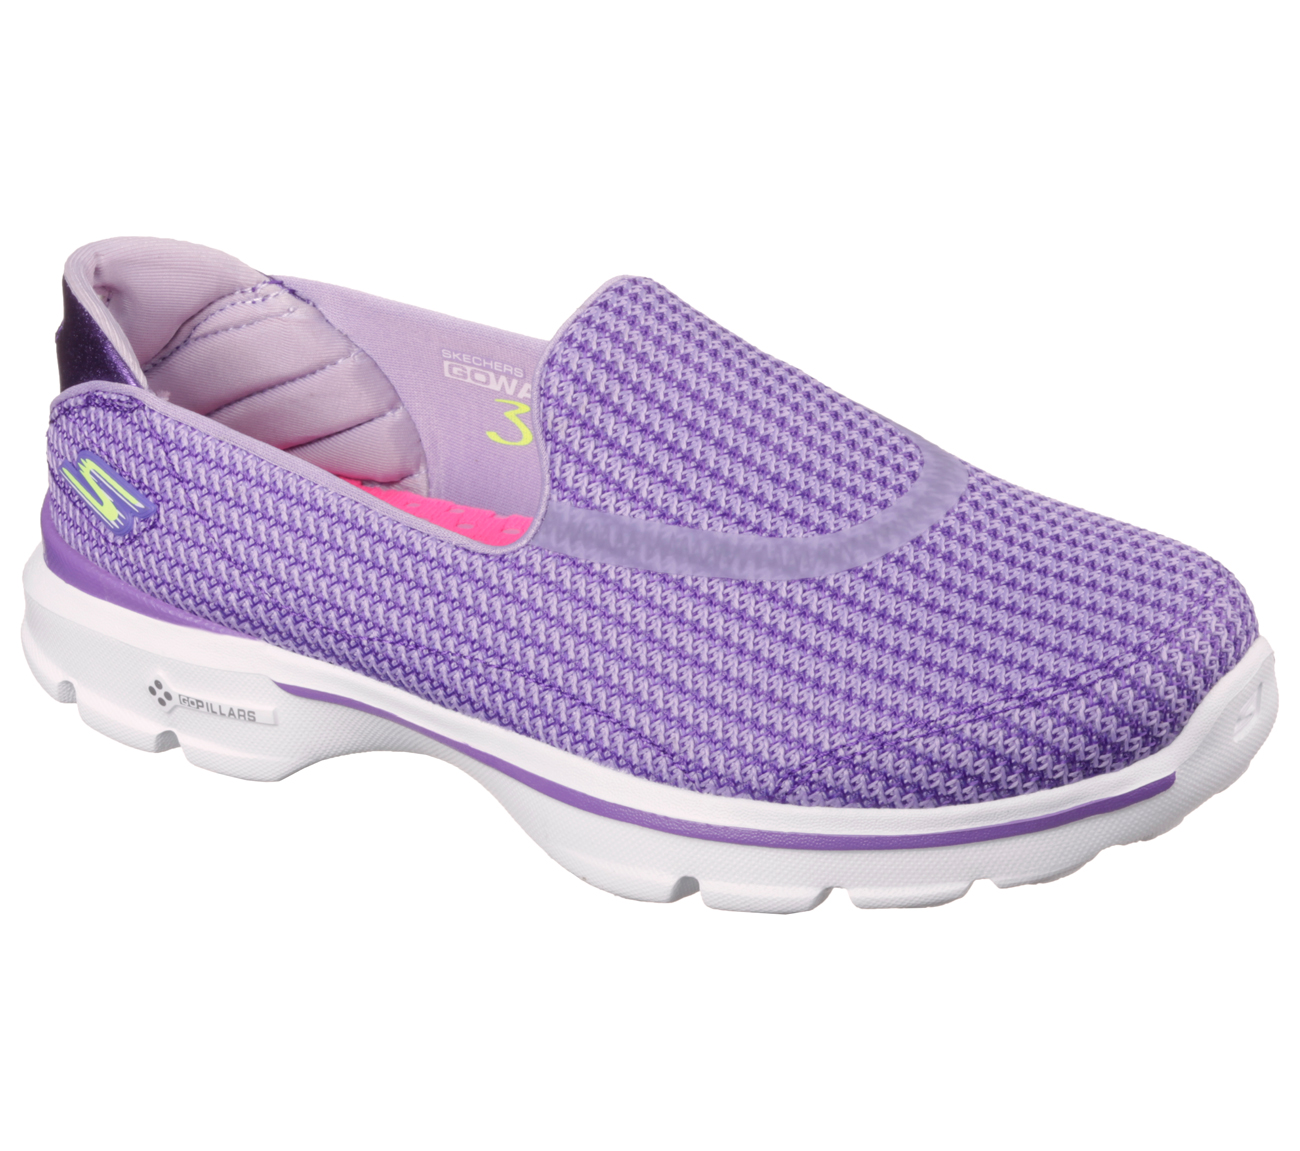 Top 5 Best Walking Shoes for Women: Choose them Wisely